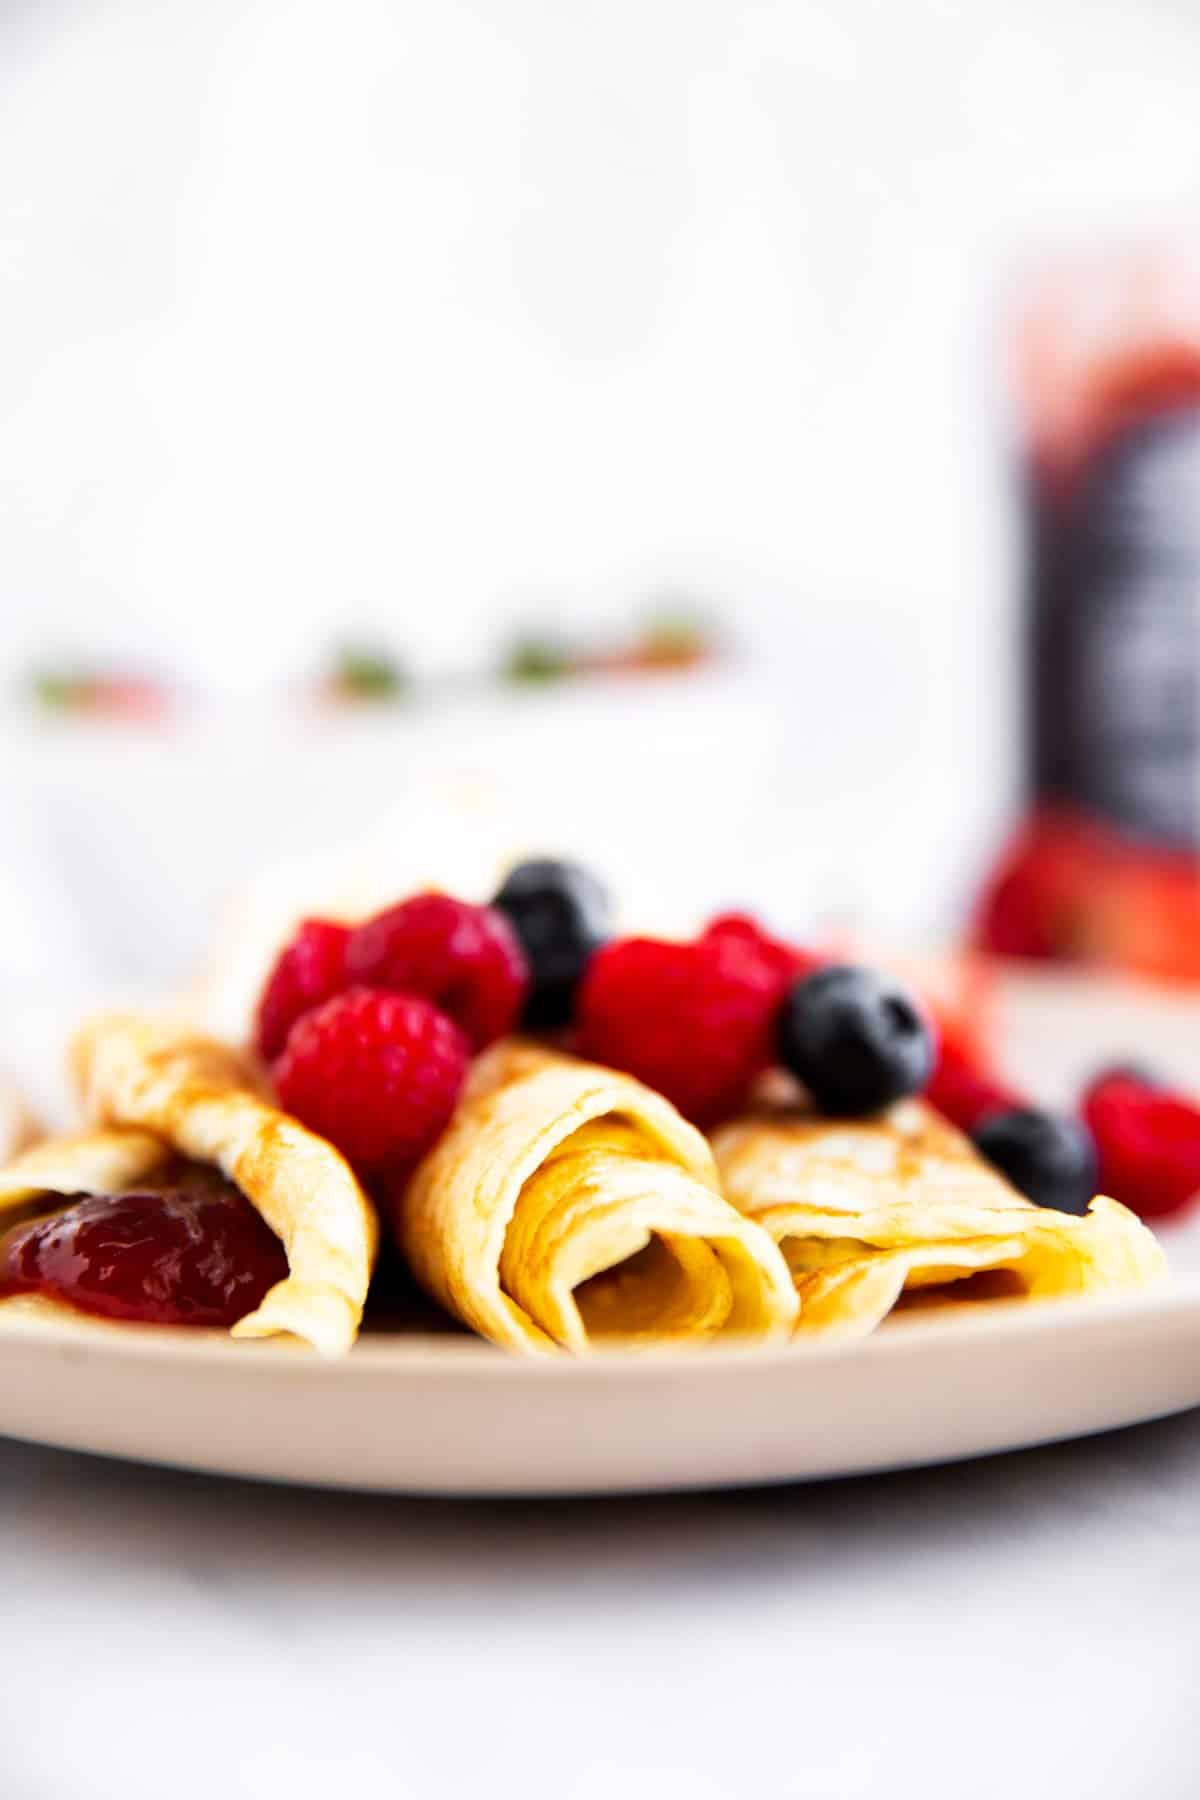 frontal view of rolled up crepes